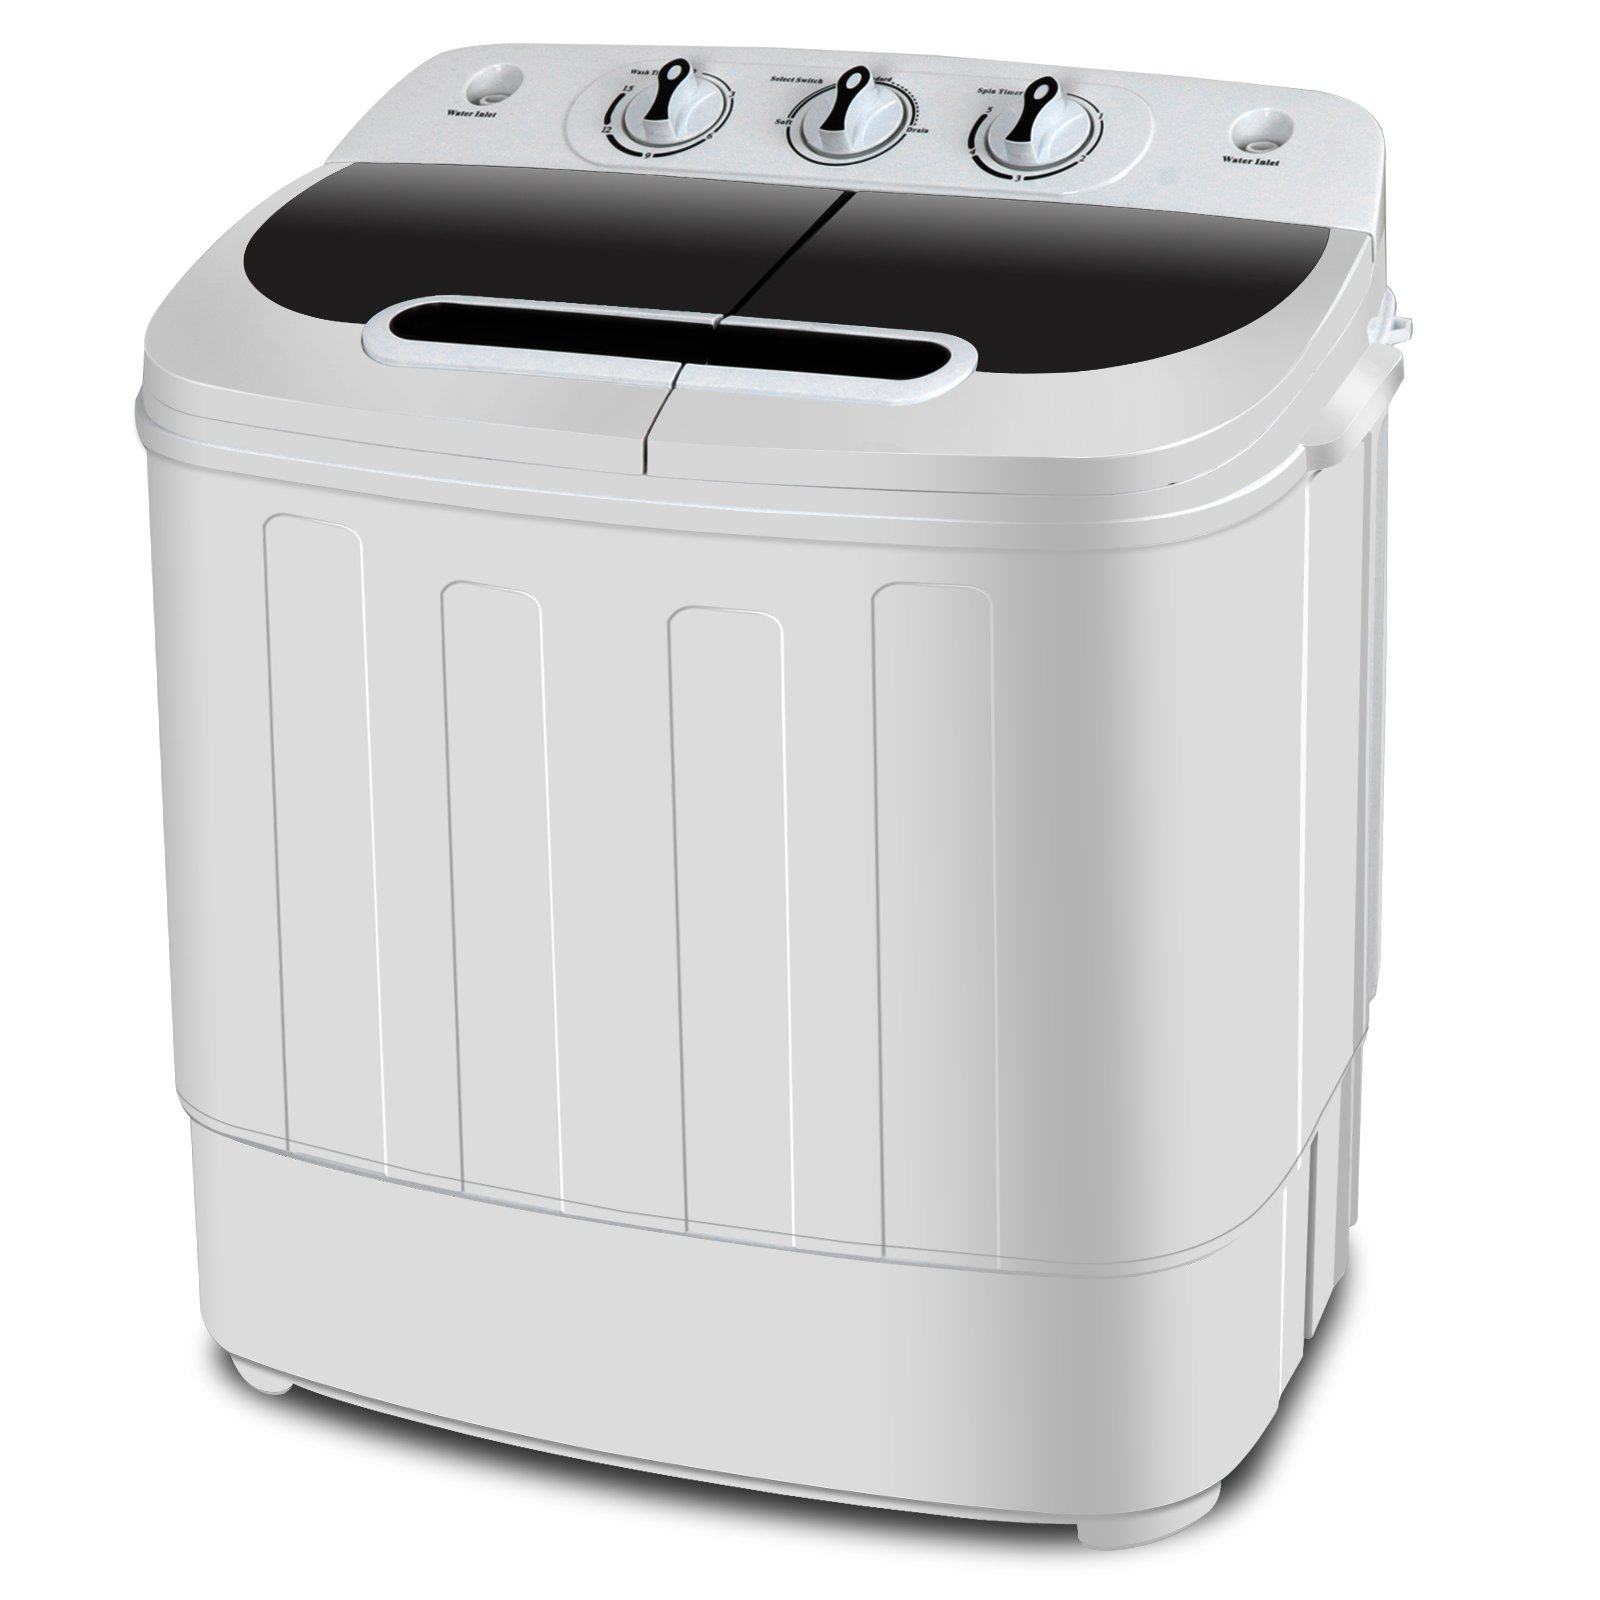 SUPER DEAL Portable Washer Mini Twin Tub Washing Machine w/Washer&Spinner, Gravity Drain Pump, 13lbs Capacity For Camping, Apartments, Dorms, College Rooms, RV's, Delicates and more by Super Dea